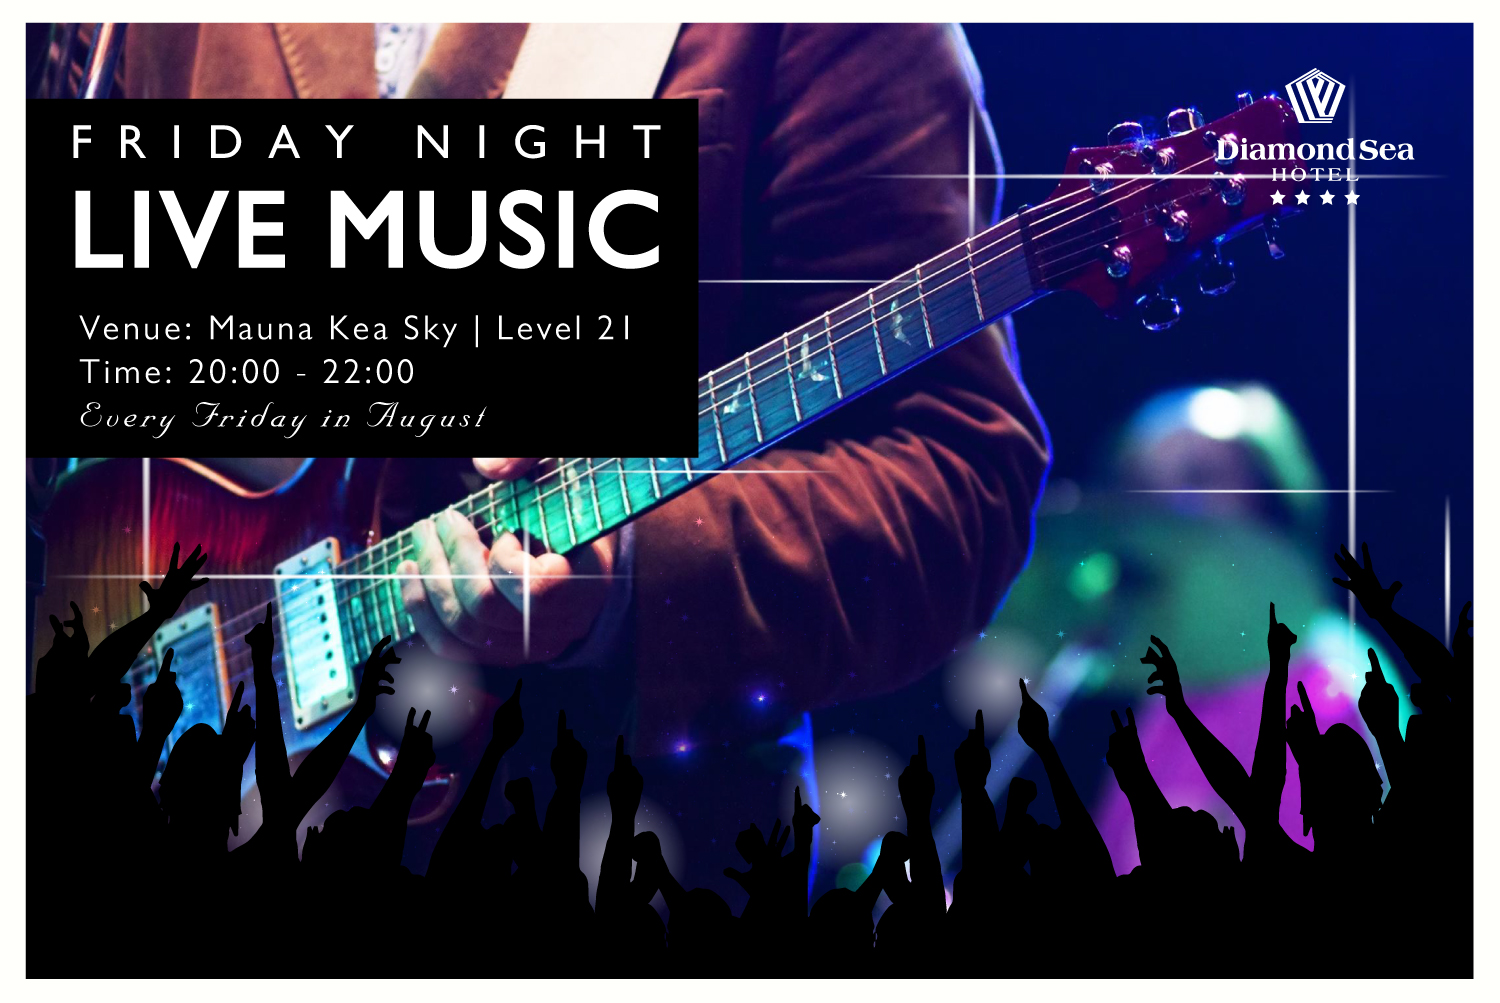 Friday Night Live Music at Mauna Kea Sky